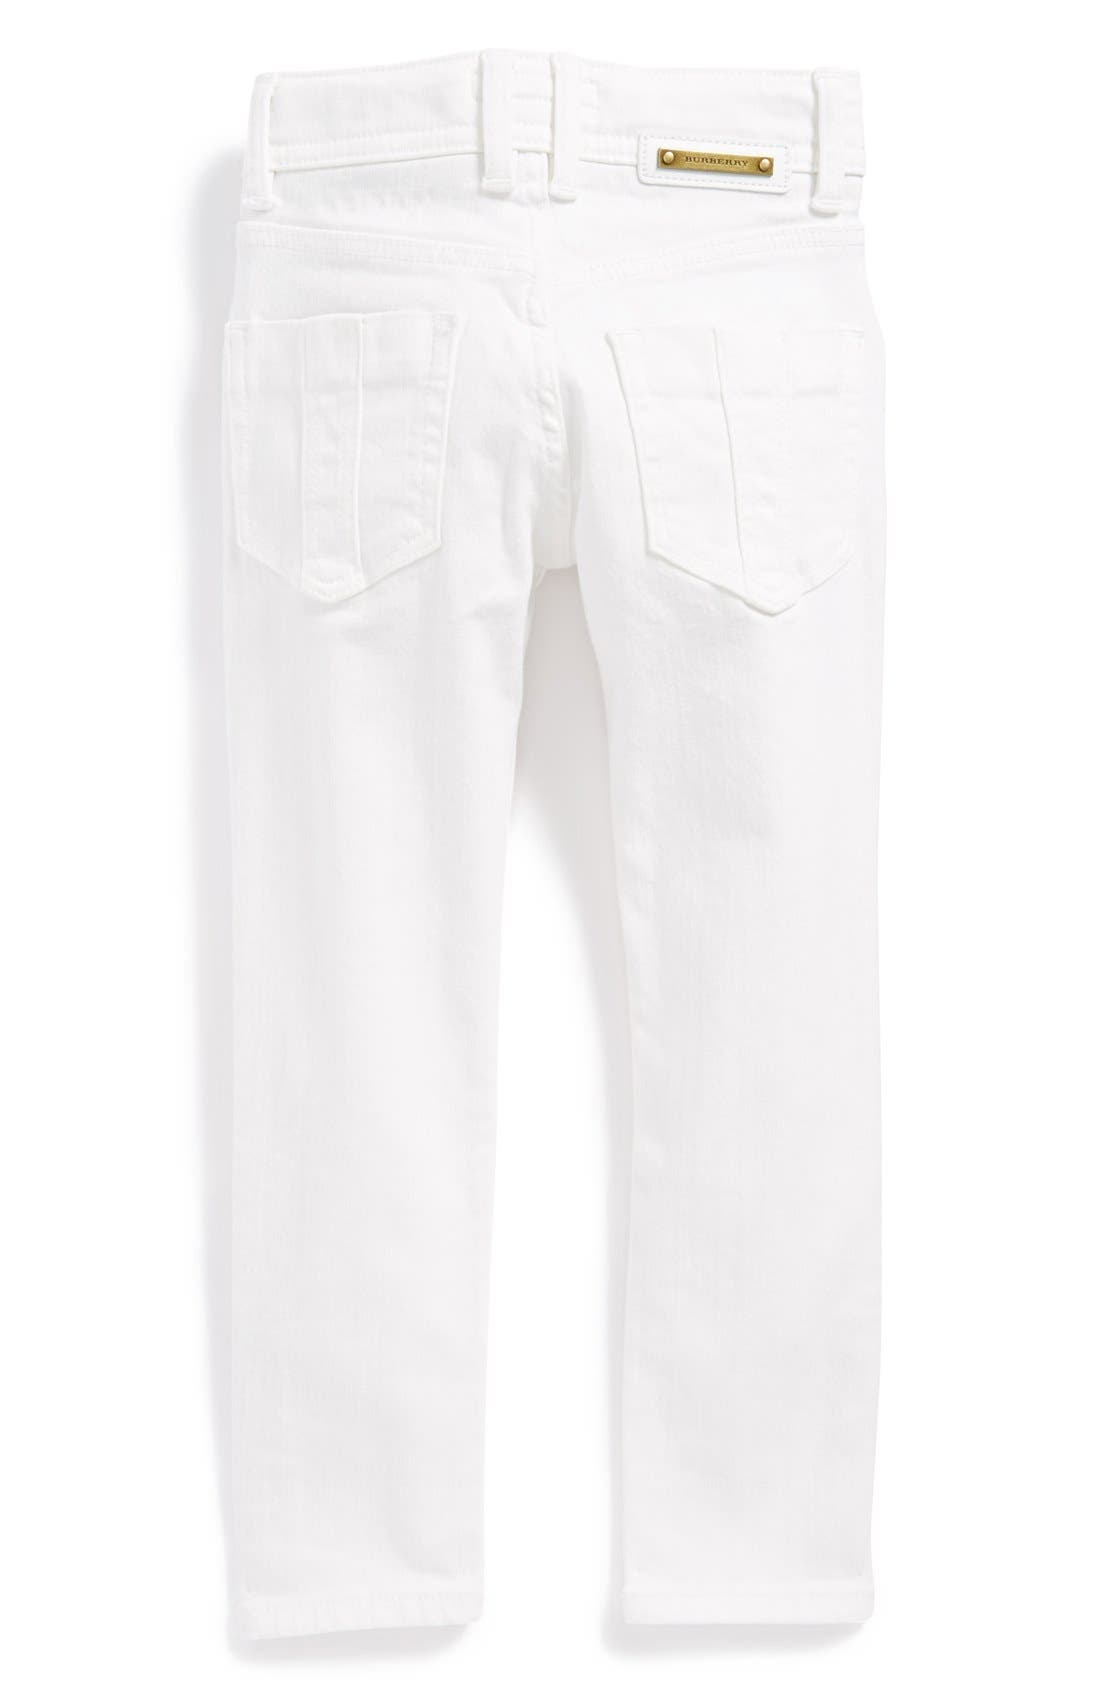 Alternate Image 1 Selected - Burberry 'Piccadilly' Skinny Jeans (Toddler Girls, Little Girls & Big Girls)